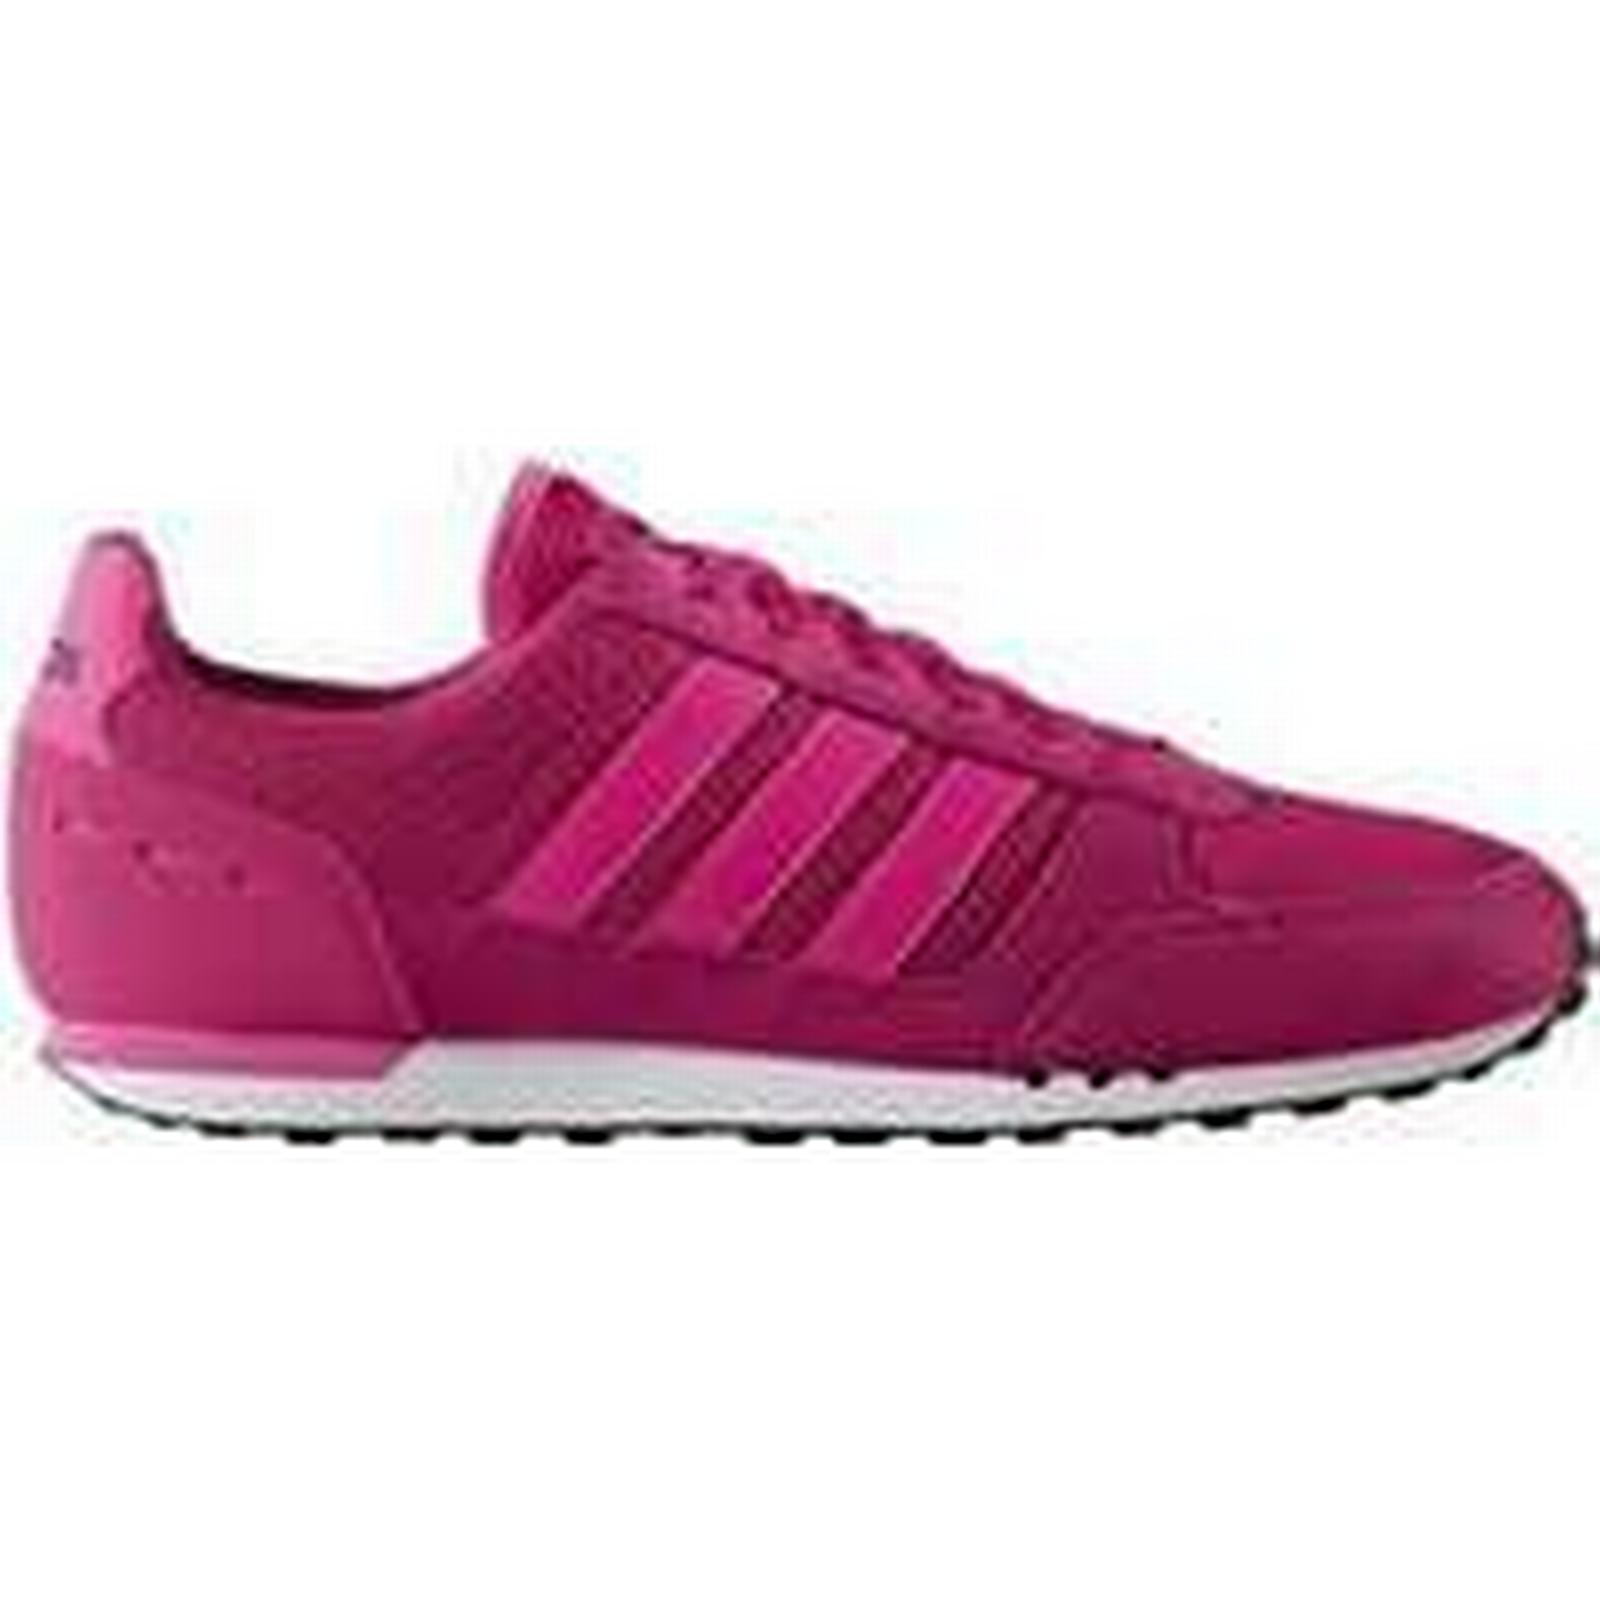 spartoo.co.uk spartoo.co.uk spartoo.co.uk adidas ville racer w femmes & #  ; s Chaussure s formateurs en blanc 851f7d